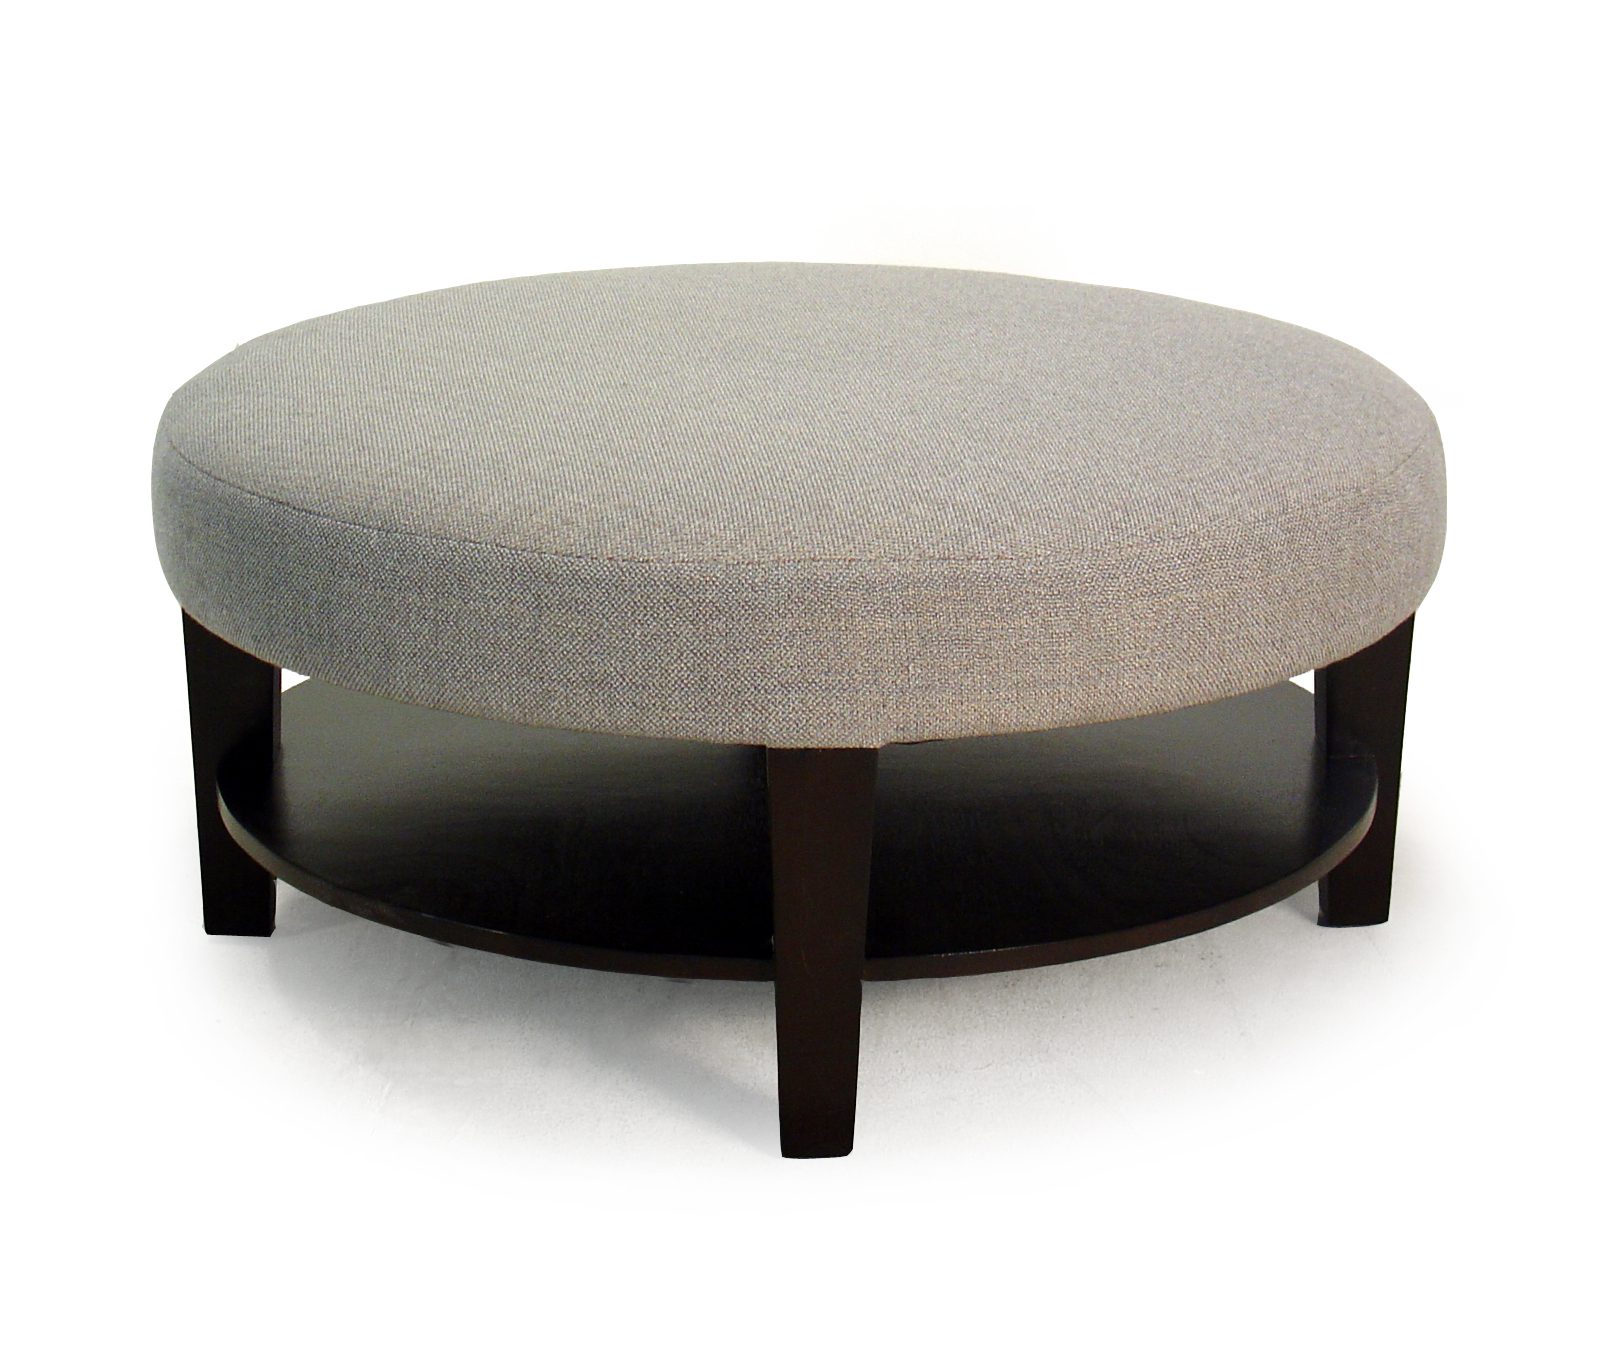 Small Round Fabric Ottoman Coffee Table Enjoy With Your Own Fabric Ottoman Coffee Table With Storage Cloth Ottoman Coffee Table (View 6 of 10)